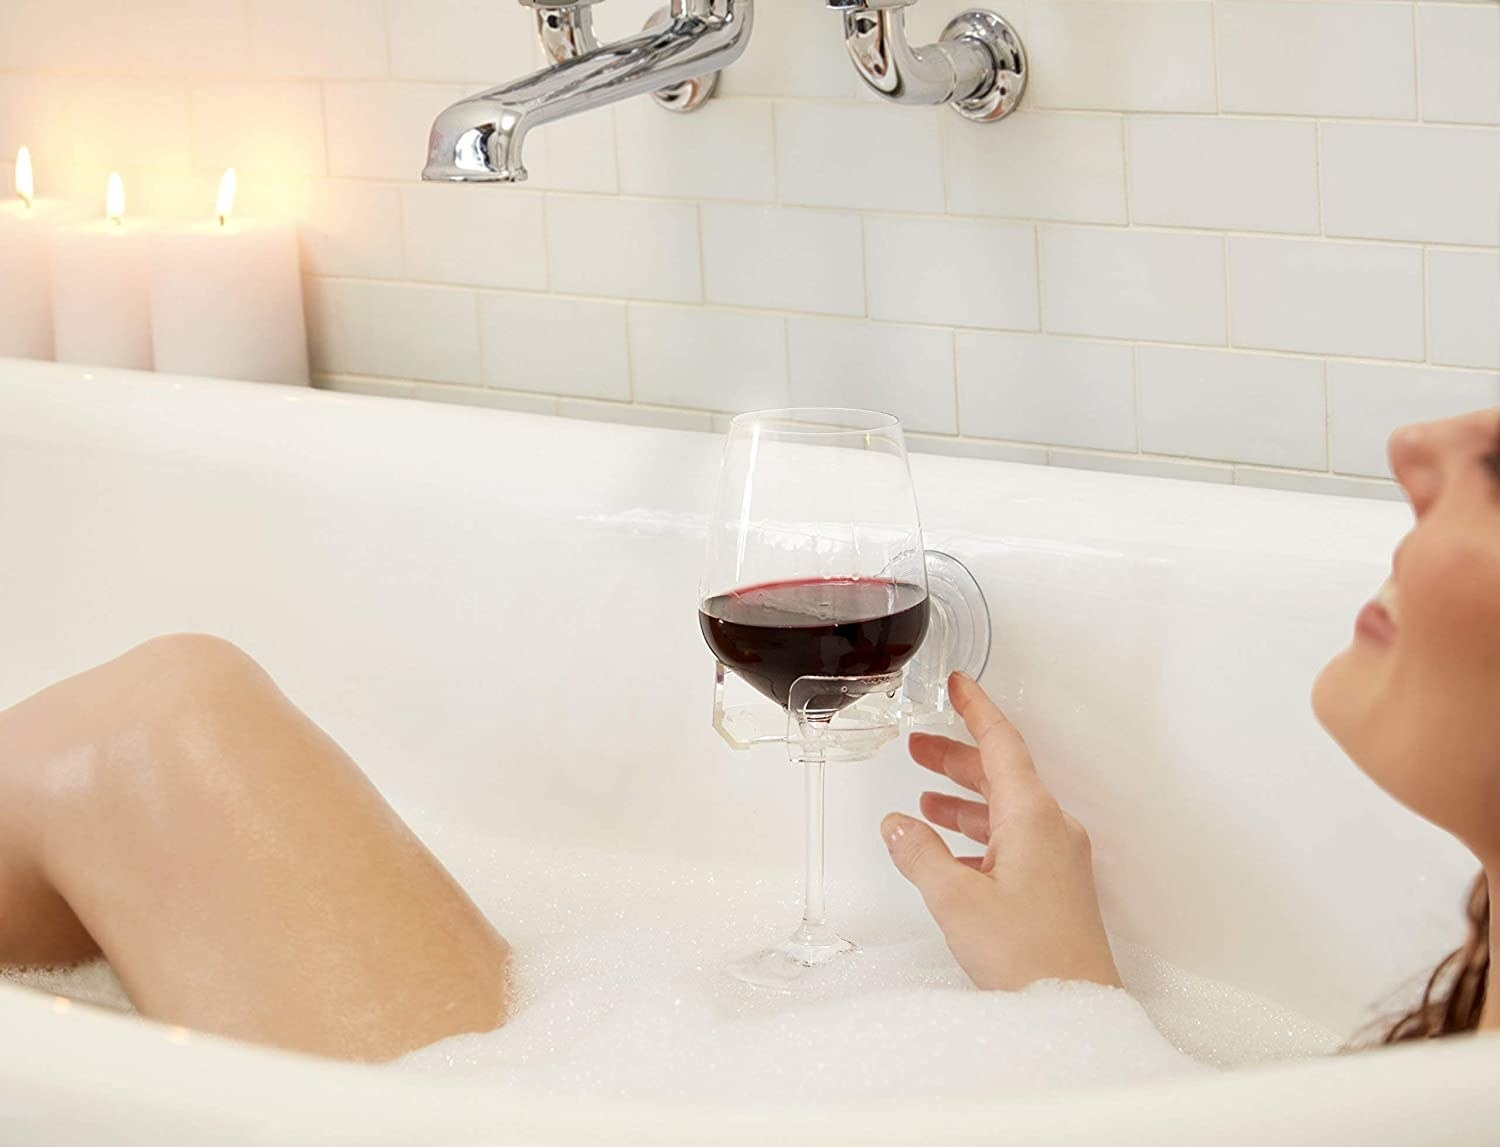 A person is bathing with the shower wine caddy attached to the side of the bath tub